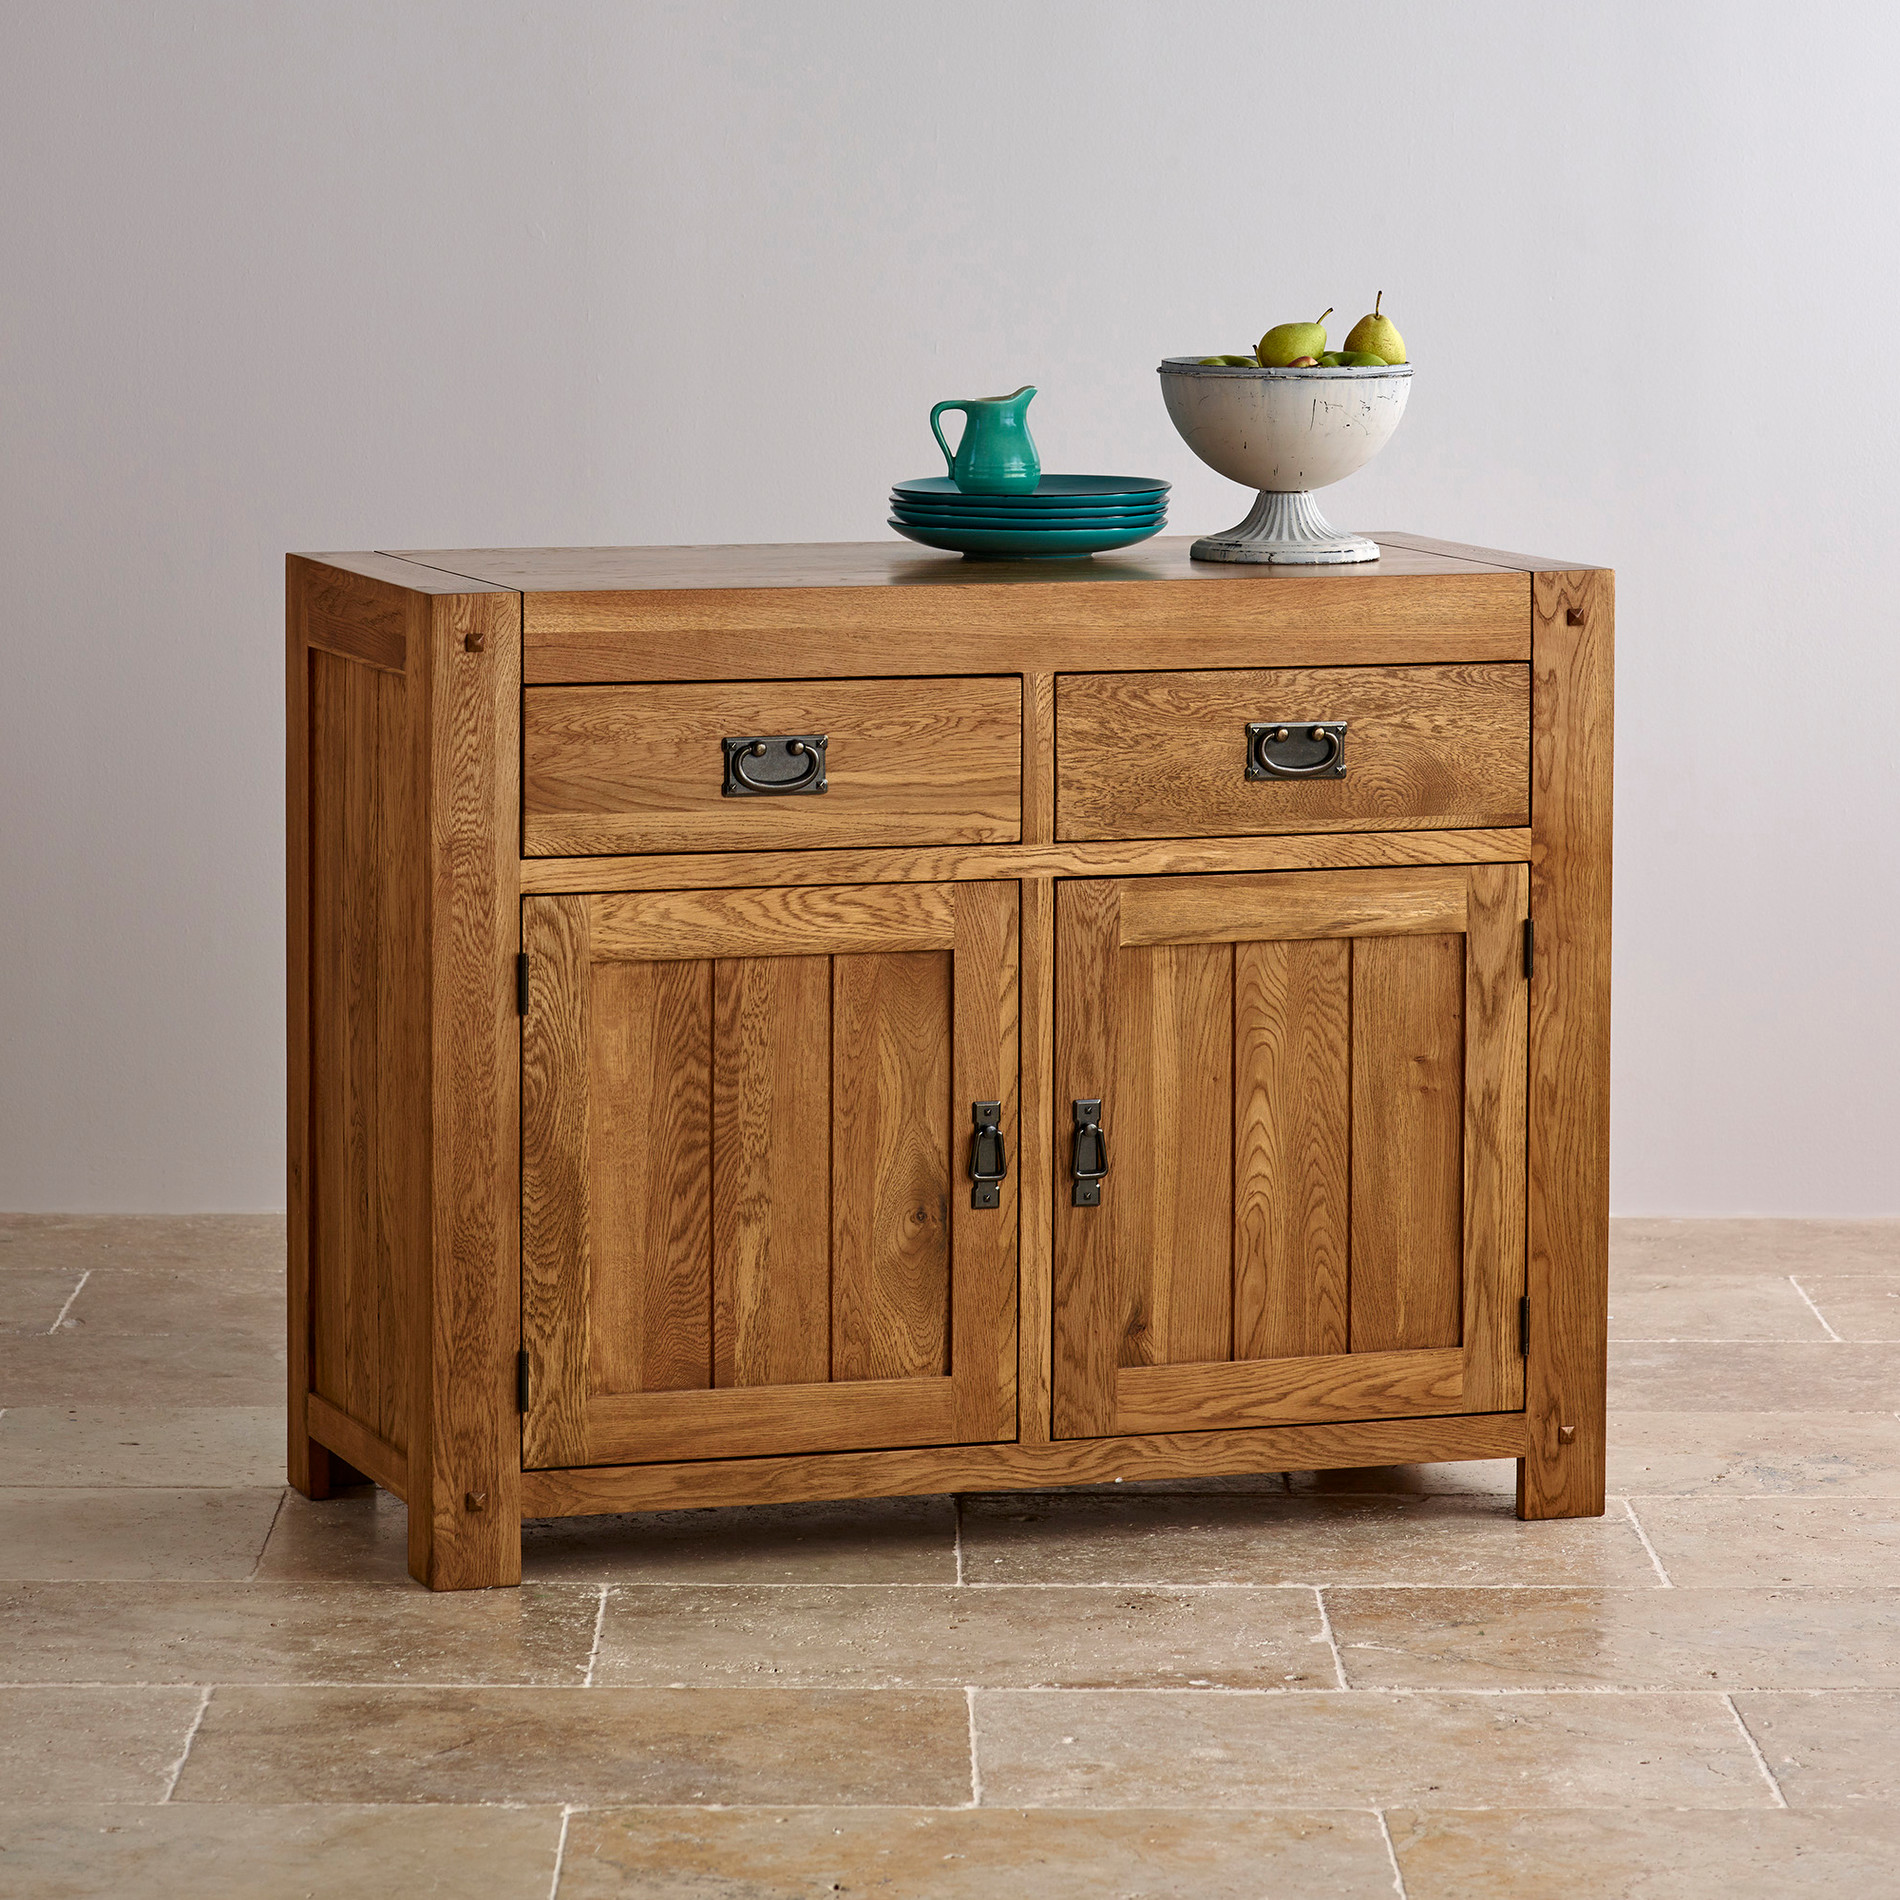 Quercus rustic solid oak small sideboard oak furniture land for Solid oak furniture